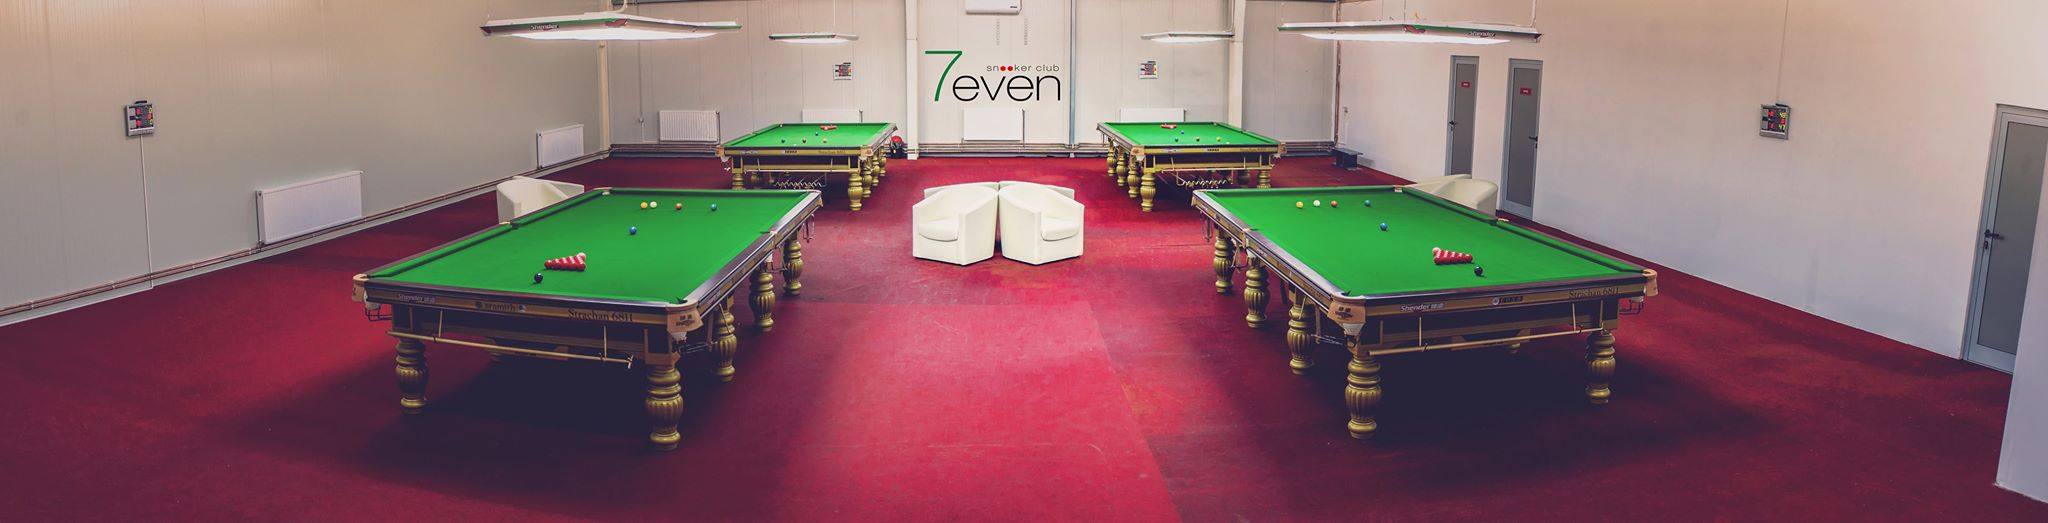 Concurs SNOOKER CLUB SEVEN